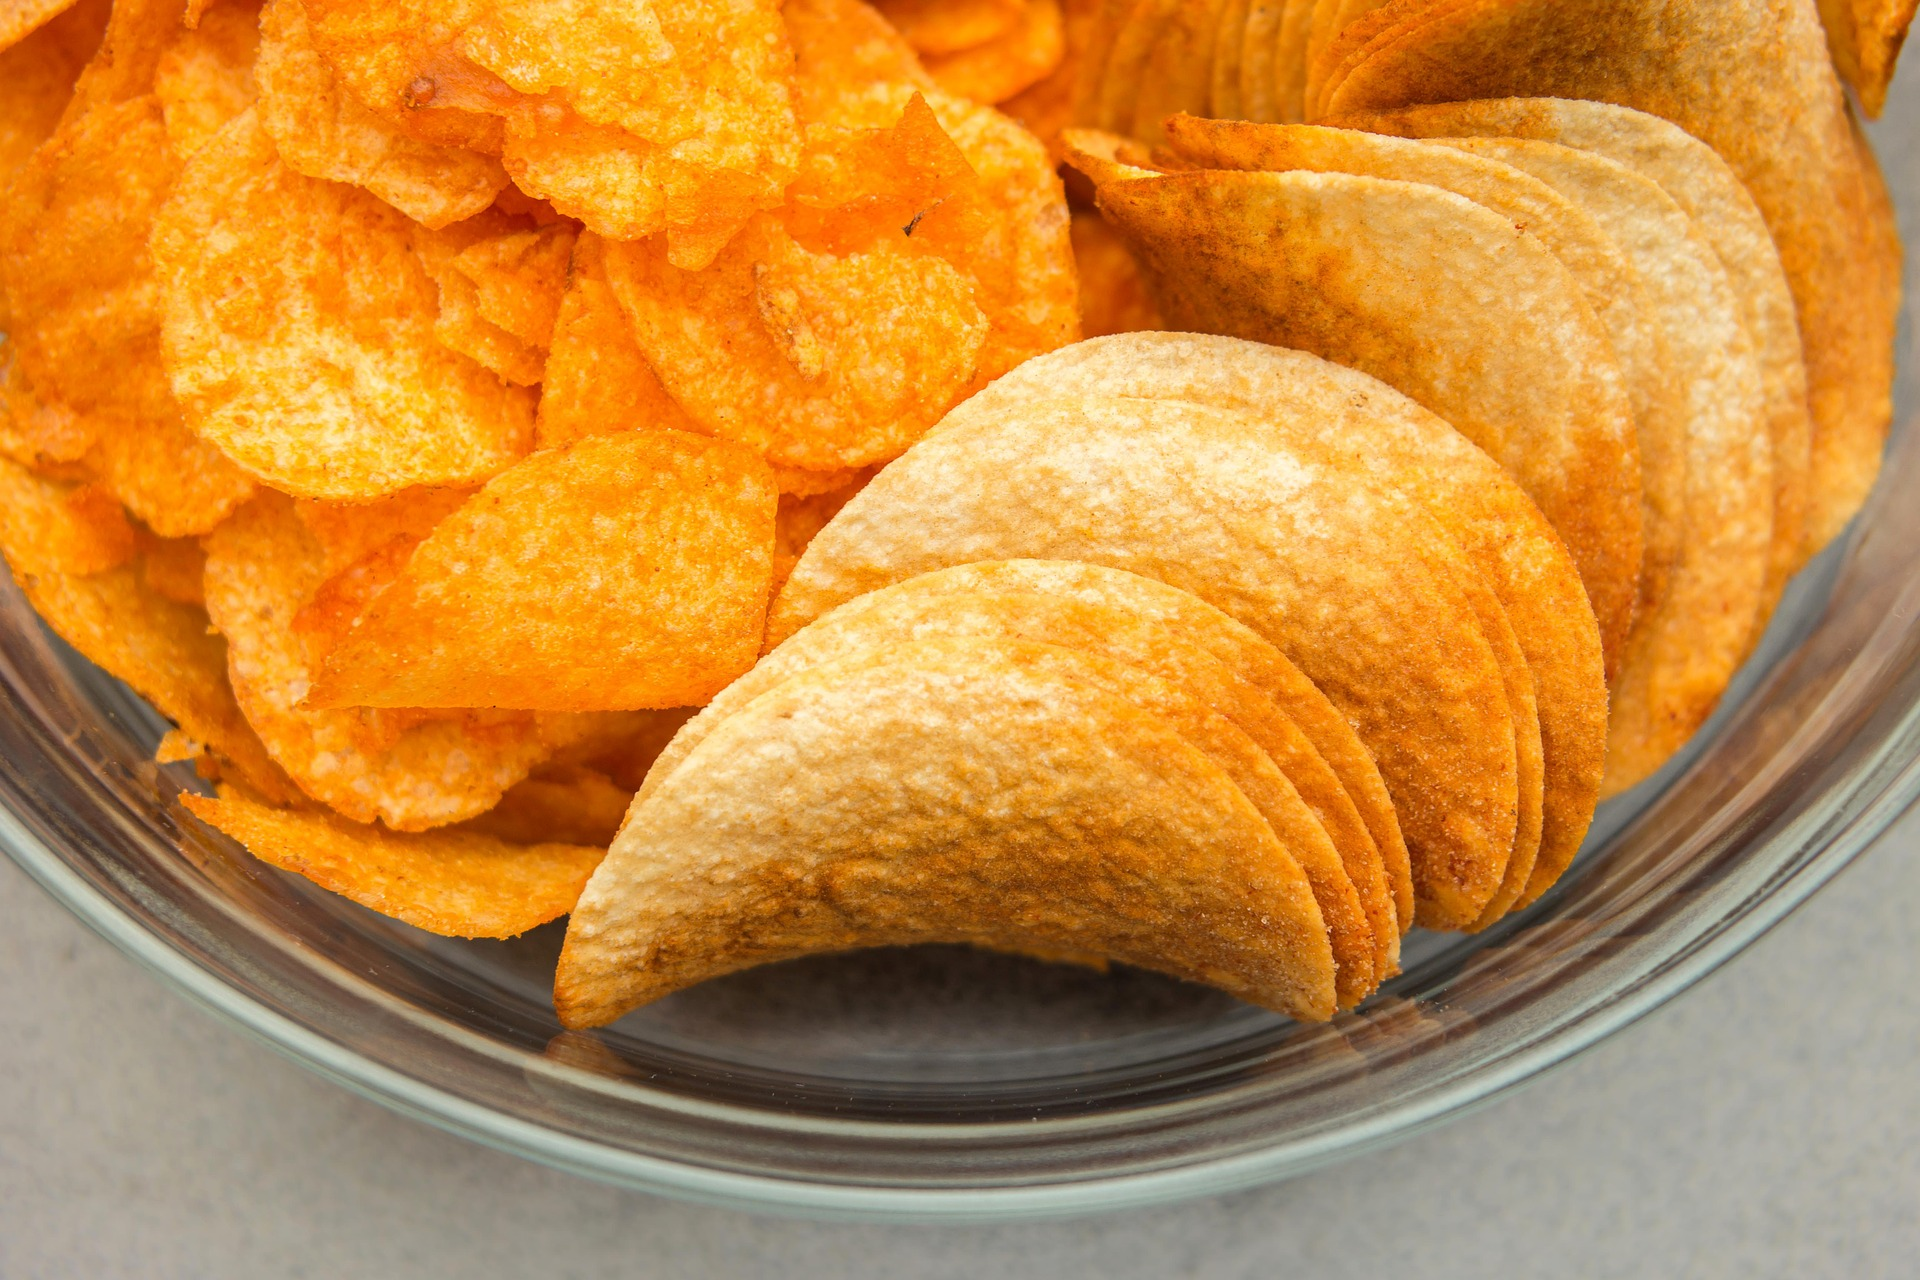 Highly processed food is associated with obesity, cancer, and early death